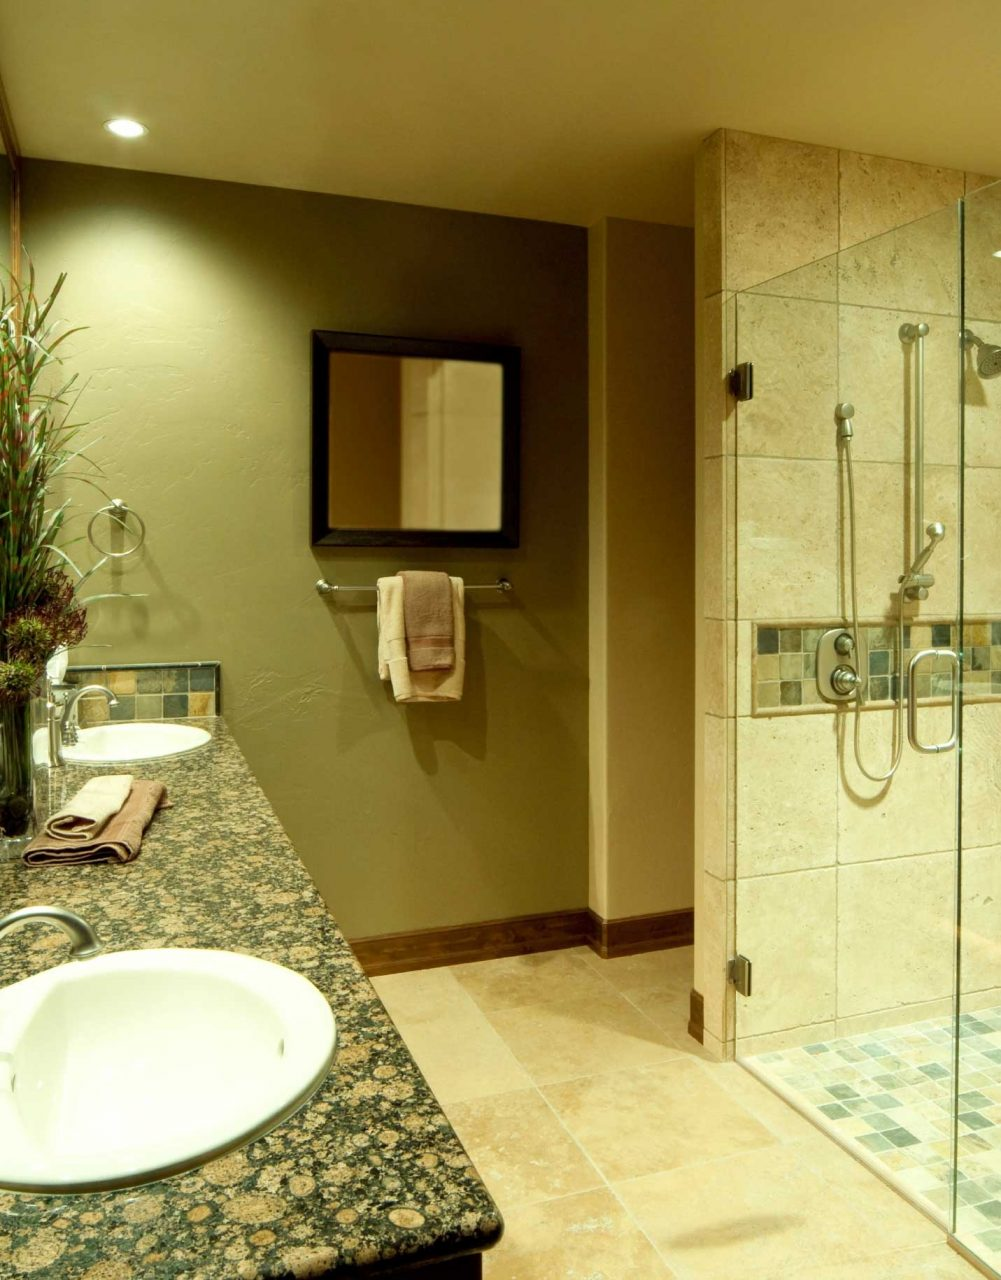 Expressbaths Raleigh Express Baths Bathroom Remodeling